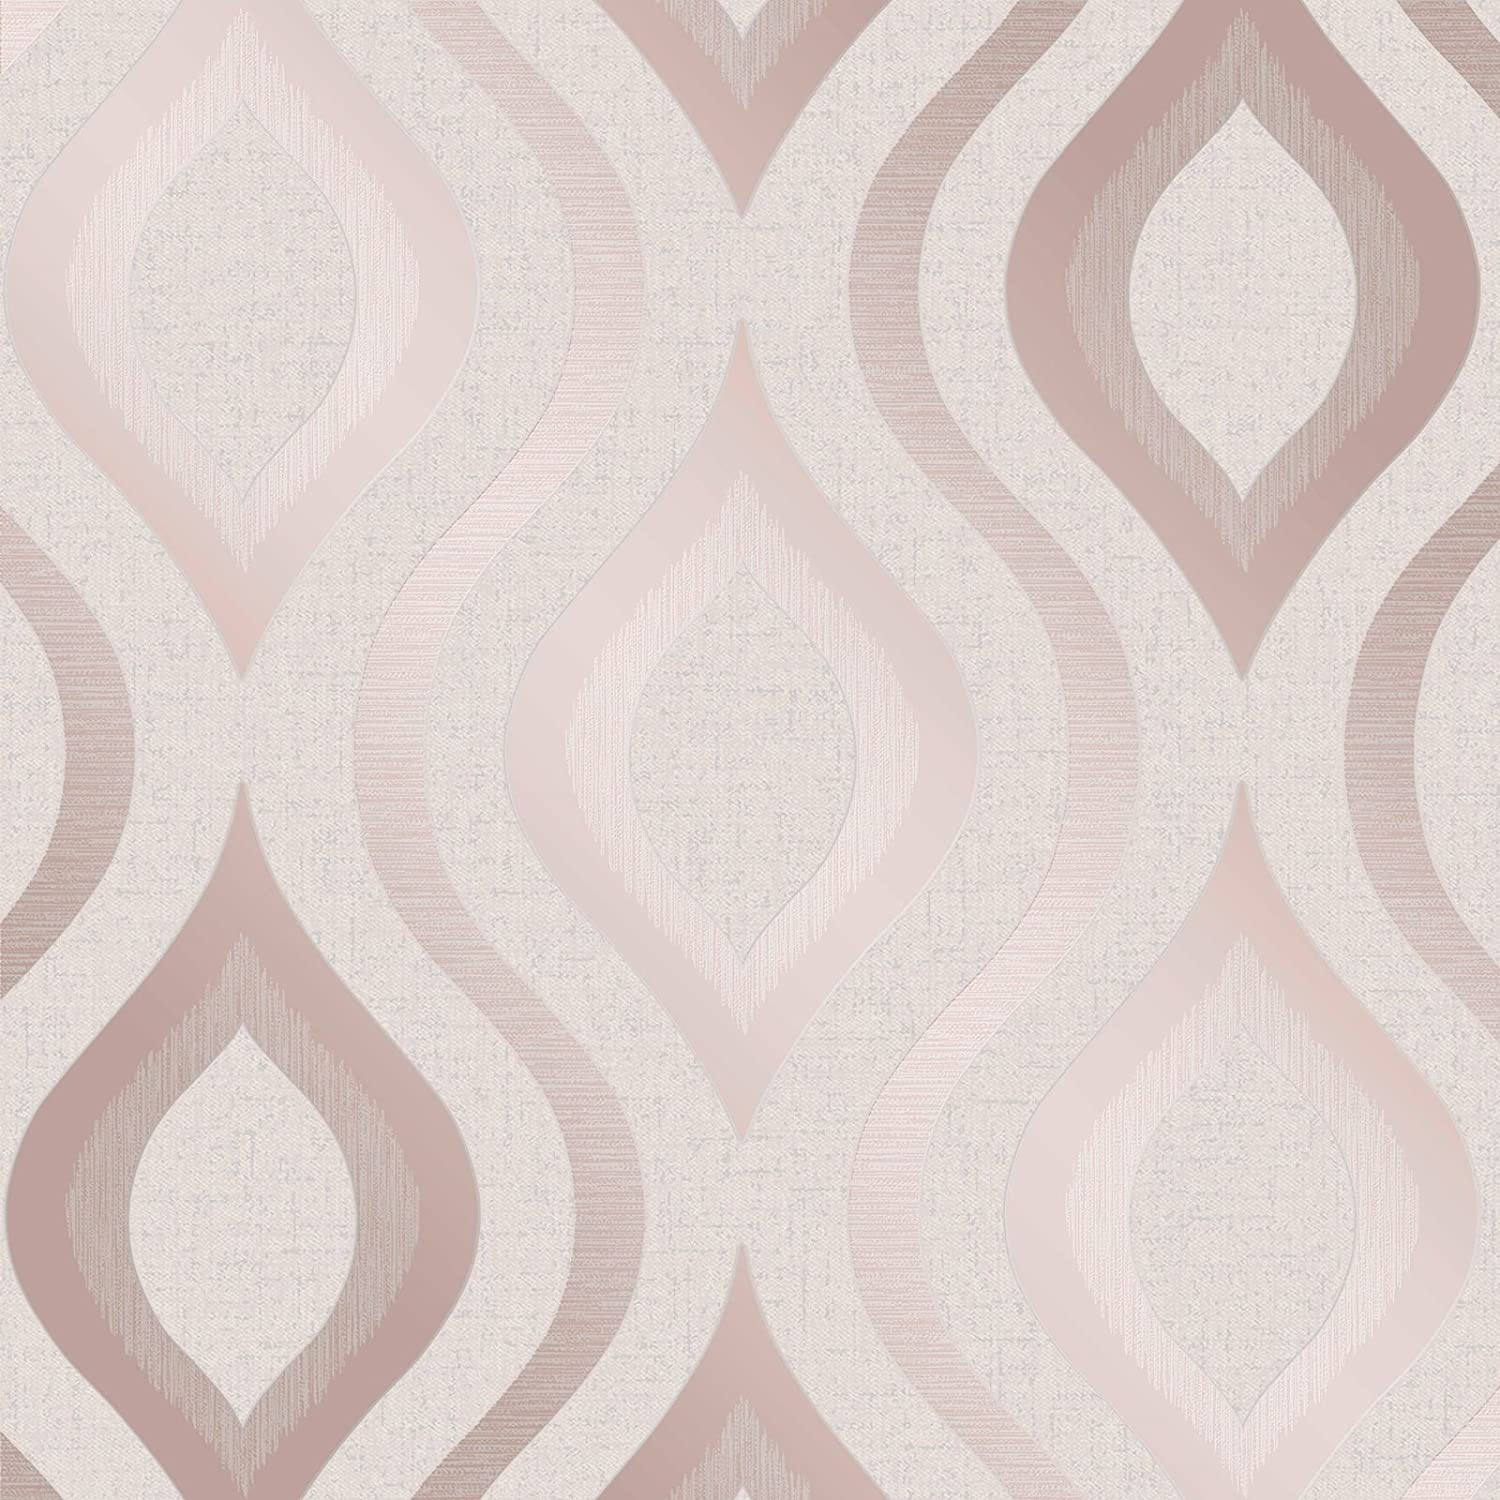 Quartz Geometric Wallpaper Rose Gold Fine Decor Fd42206 Amazon Com